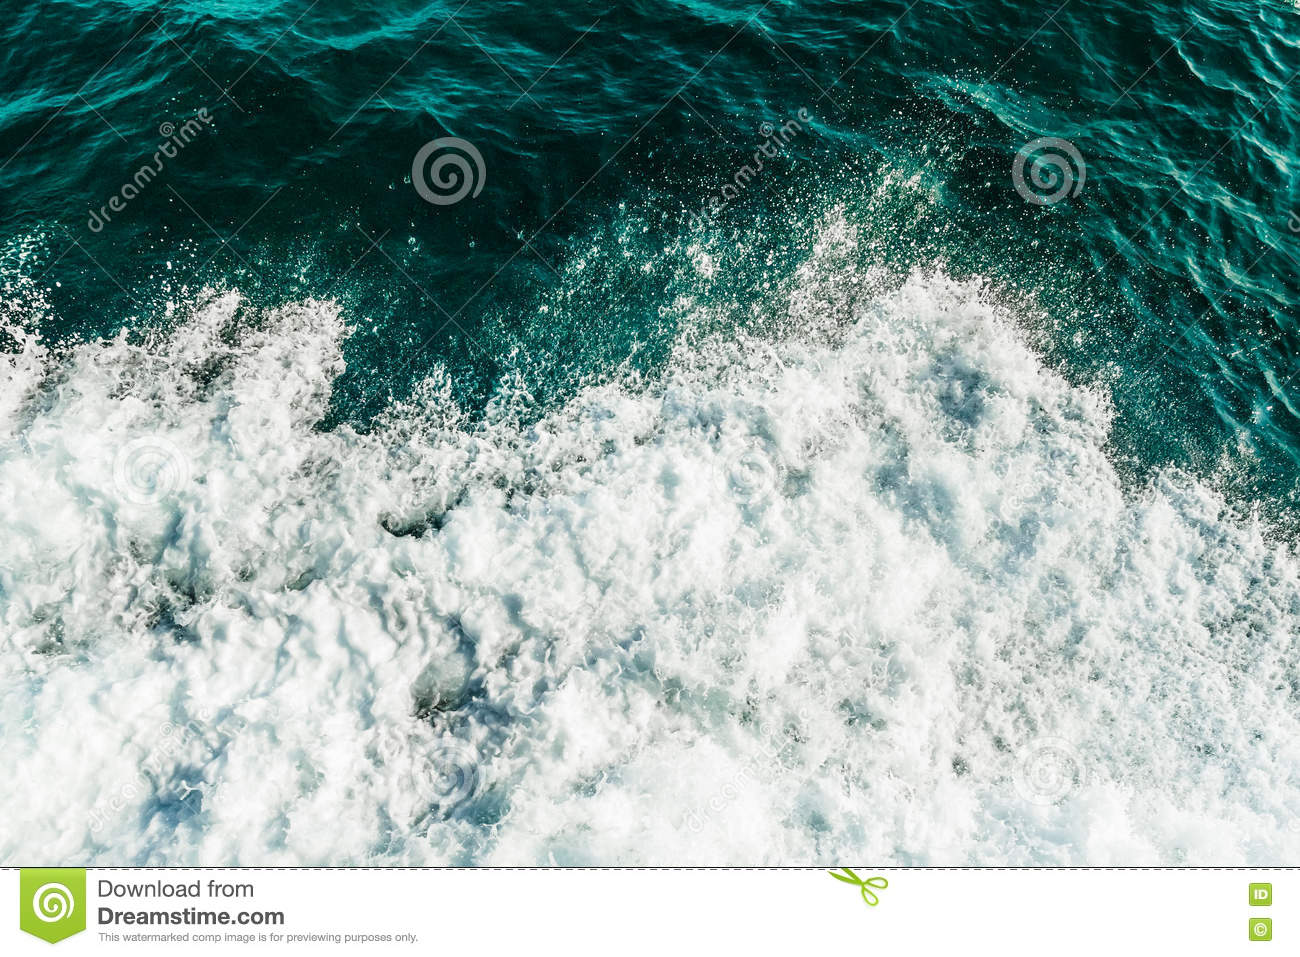 Rolling sea waves, top view of ocean covered by foam. Turquoise and green color water